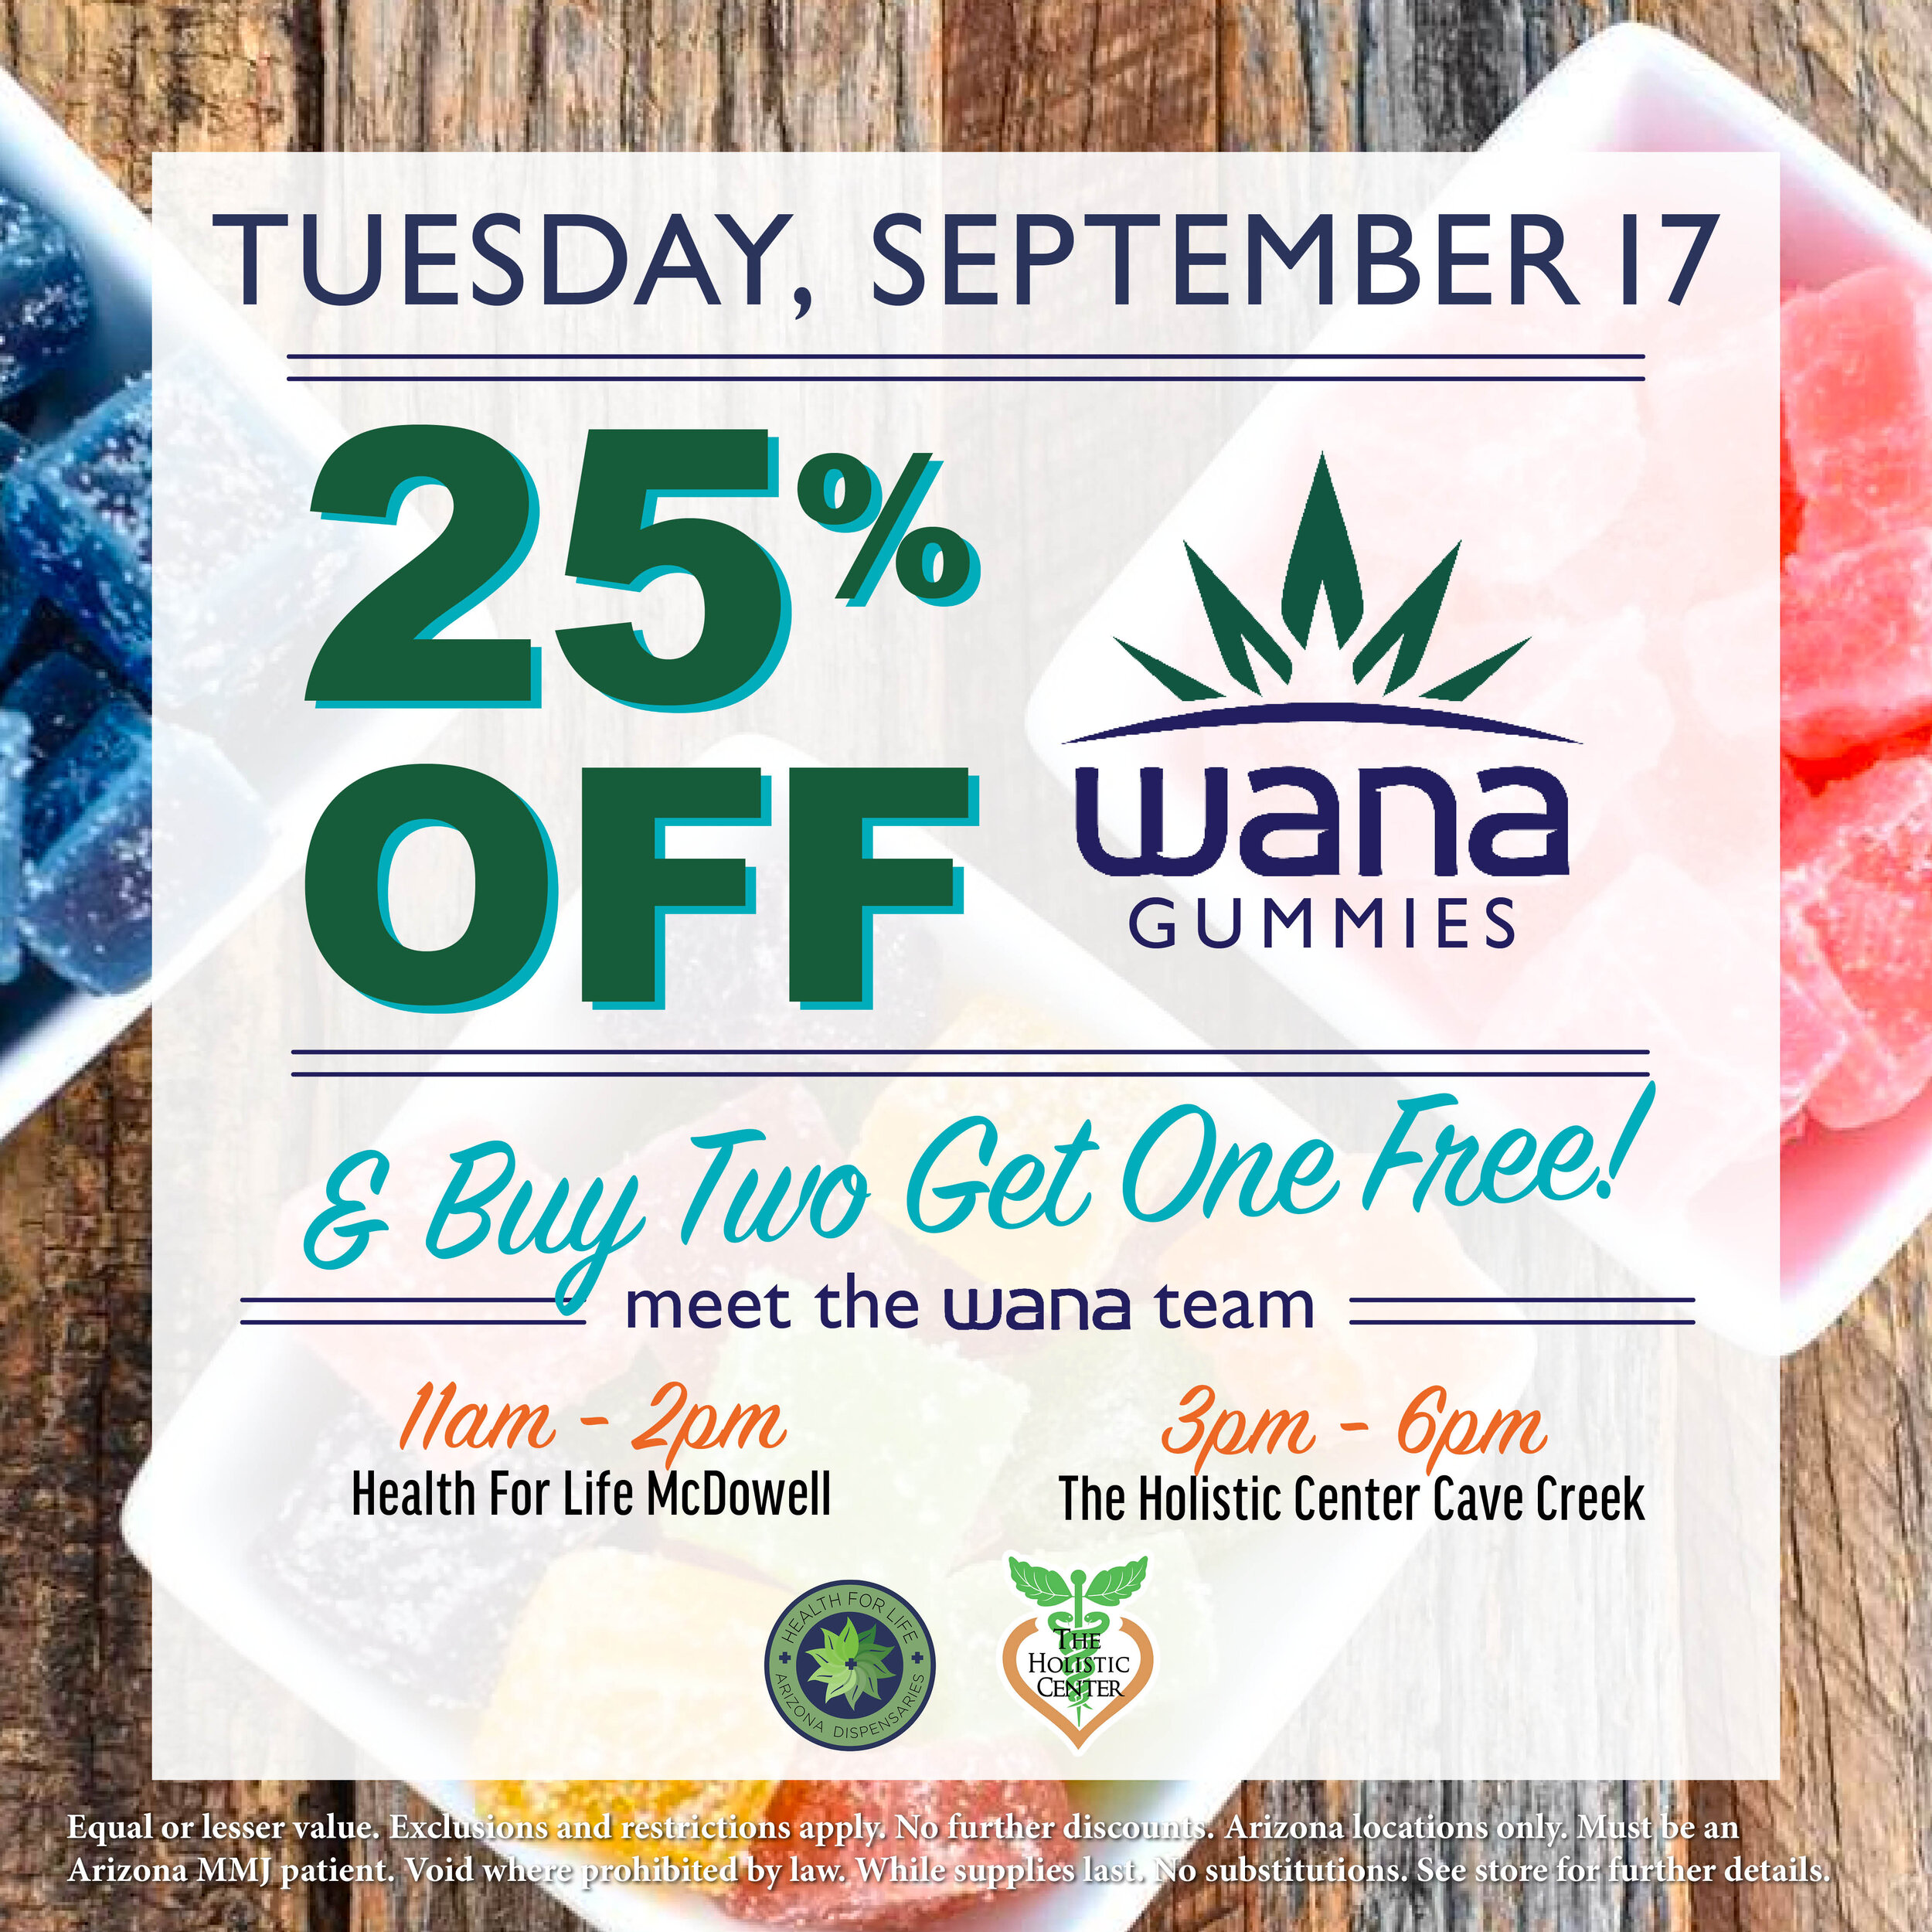 Save on WANA!